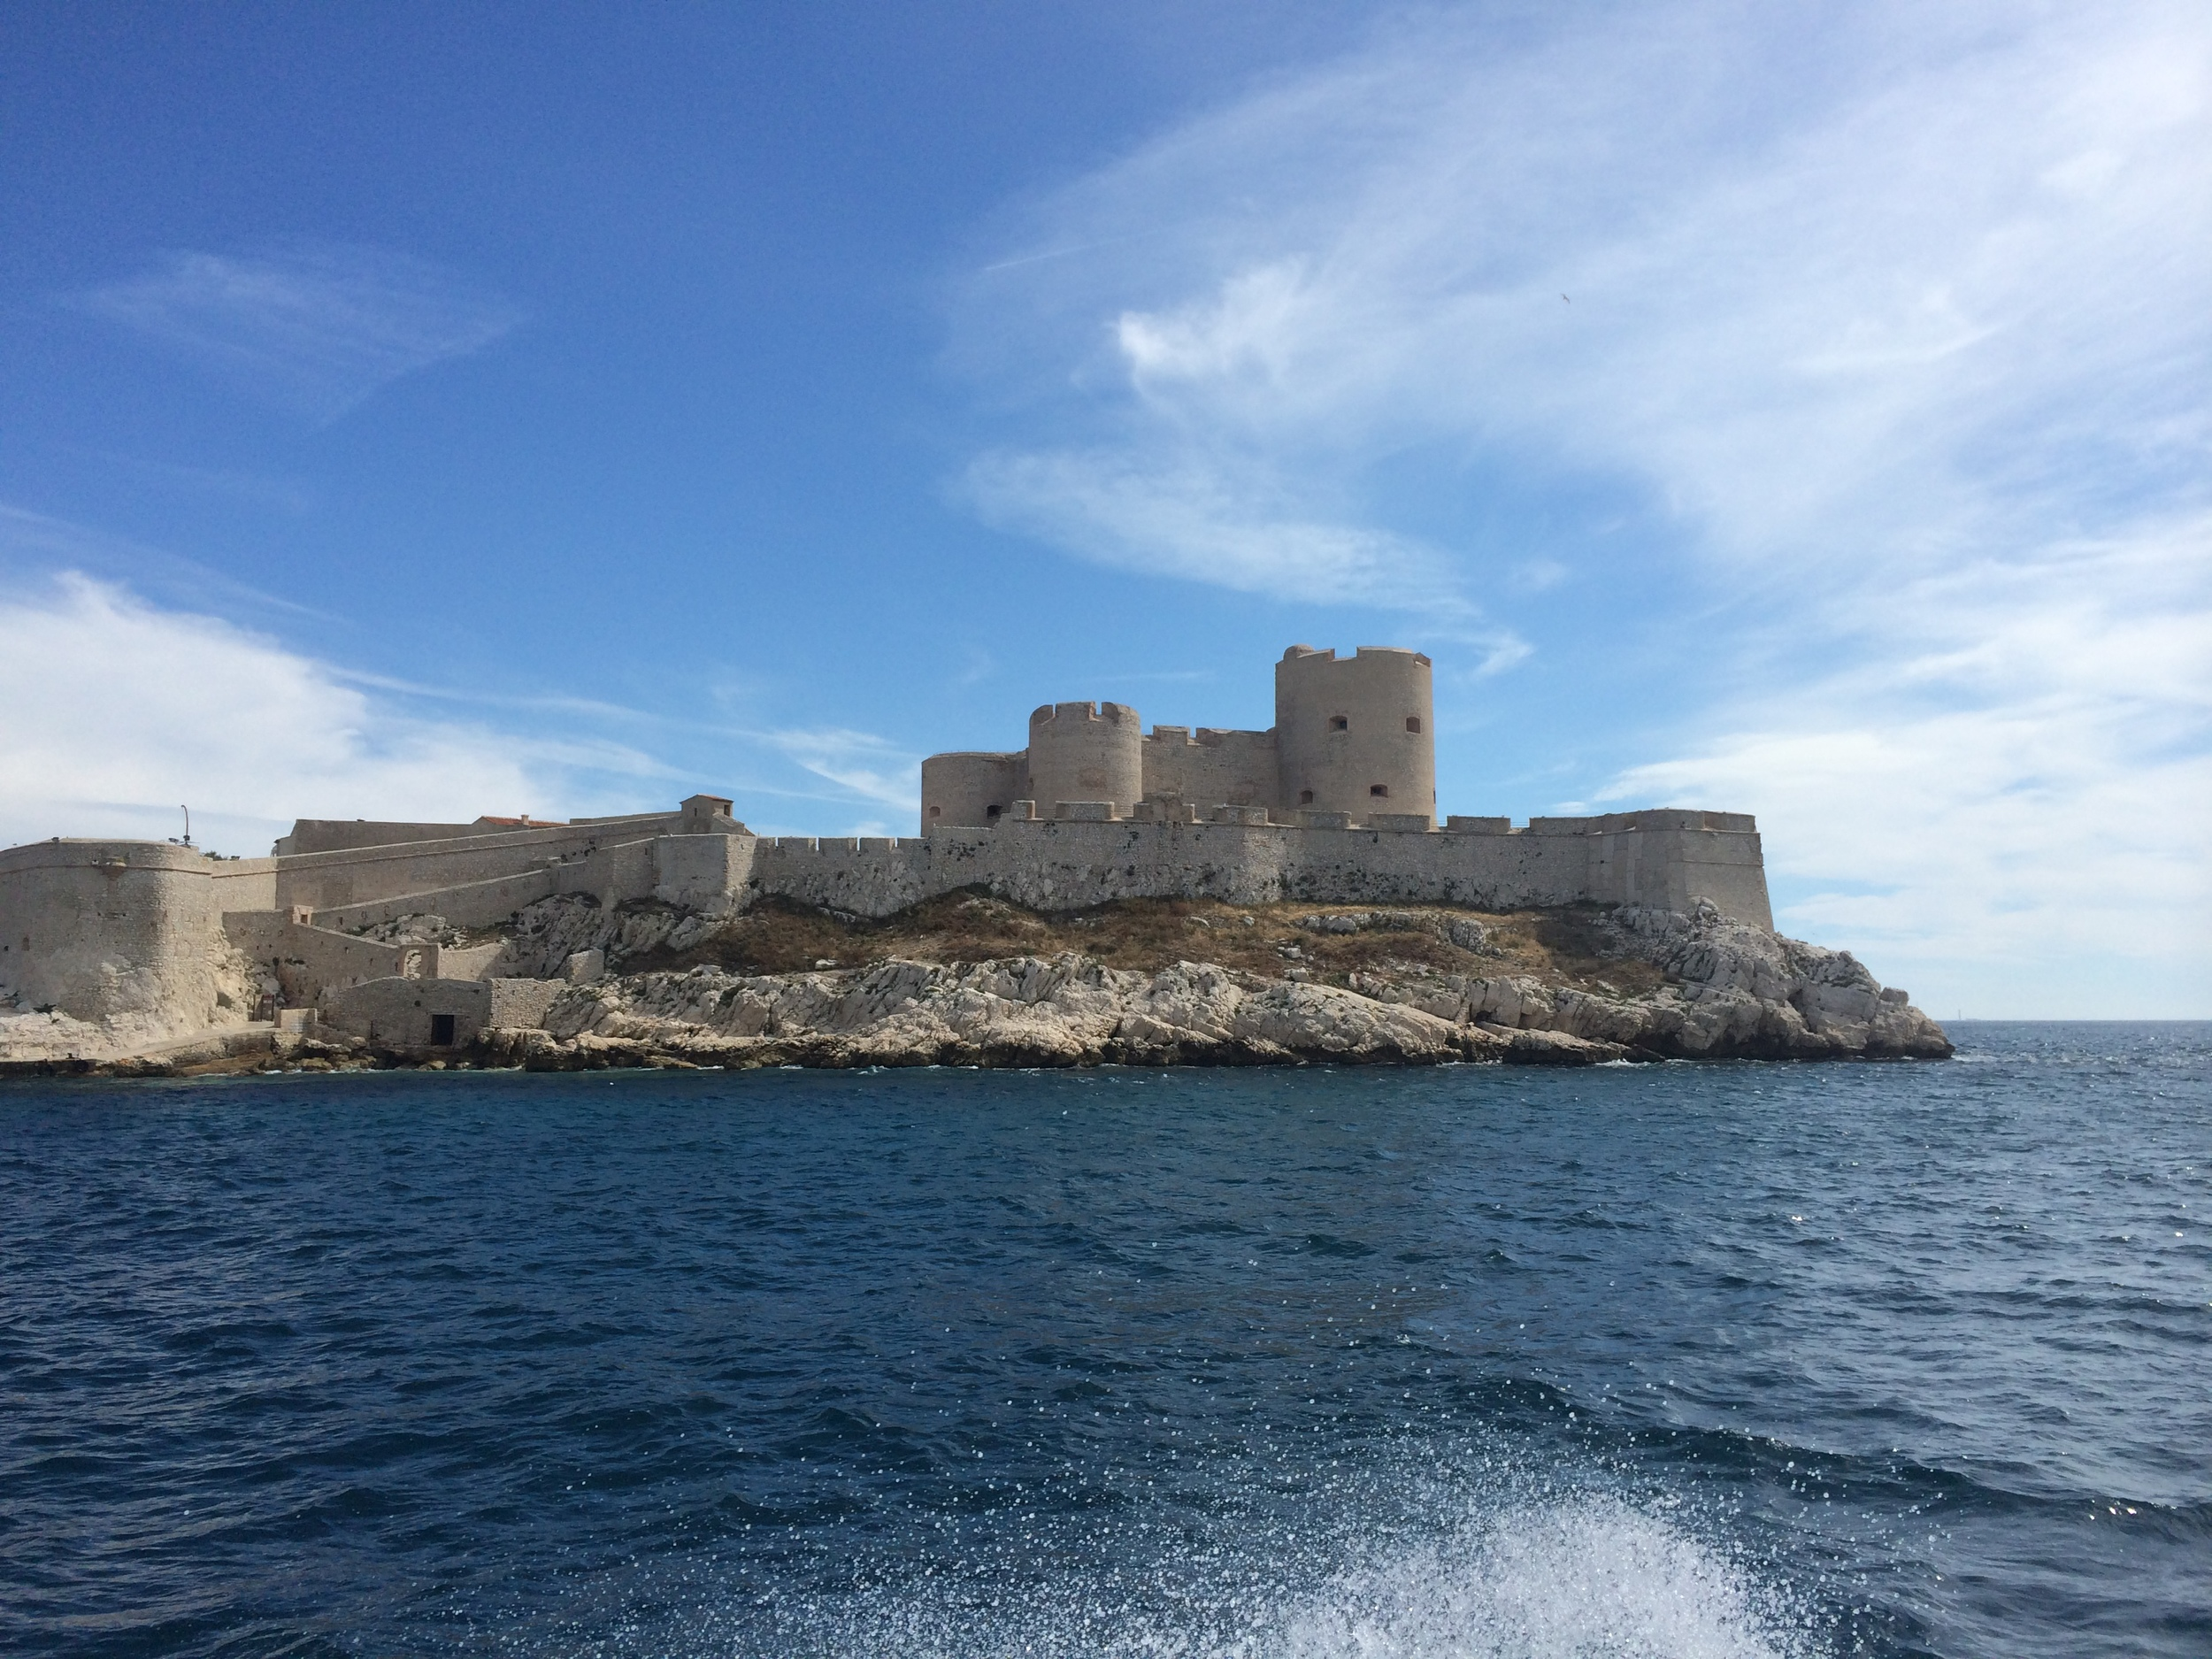 View of the fortress island from a distance. There's really not much to it.